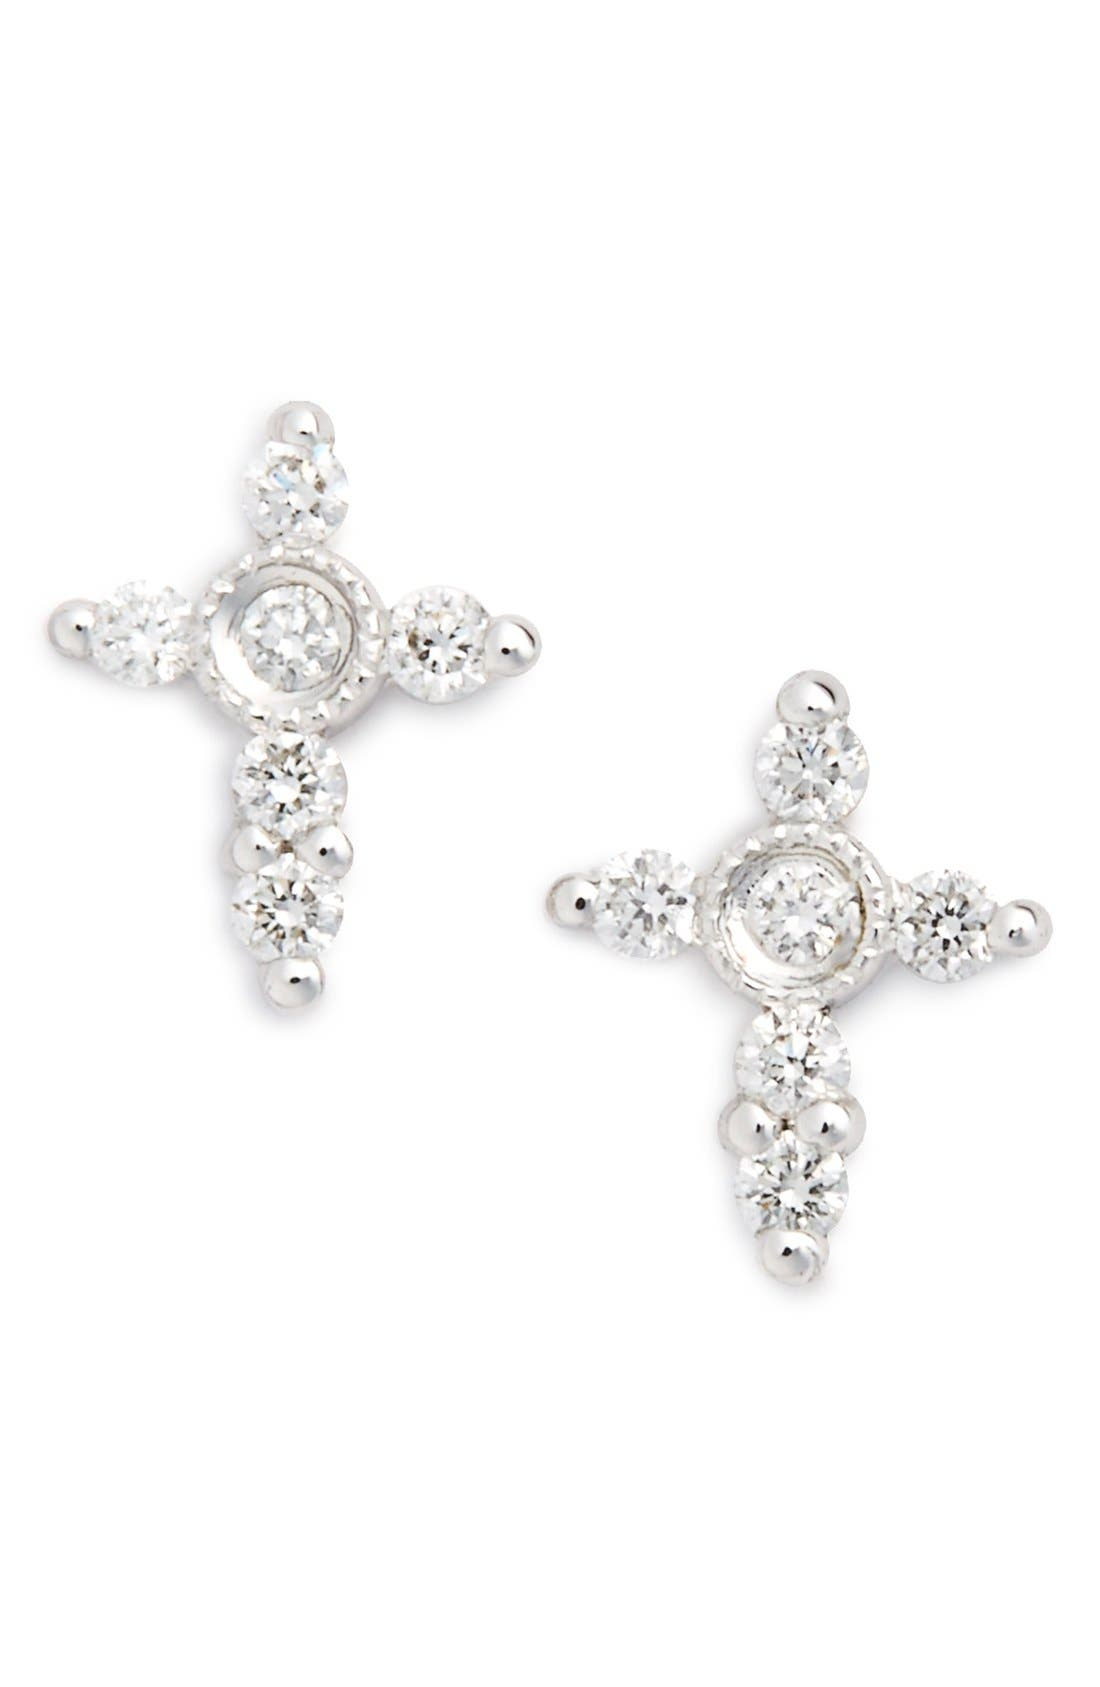 BONY LEVY Simple Obsessions Diamond Cross Stud Earrings